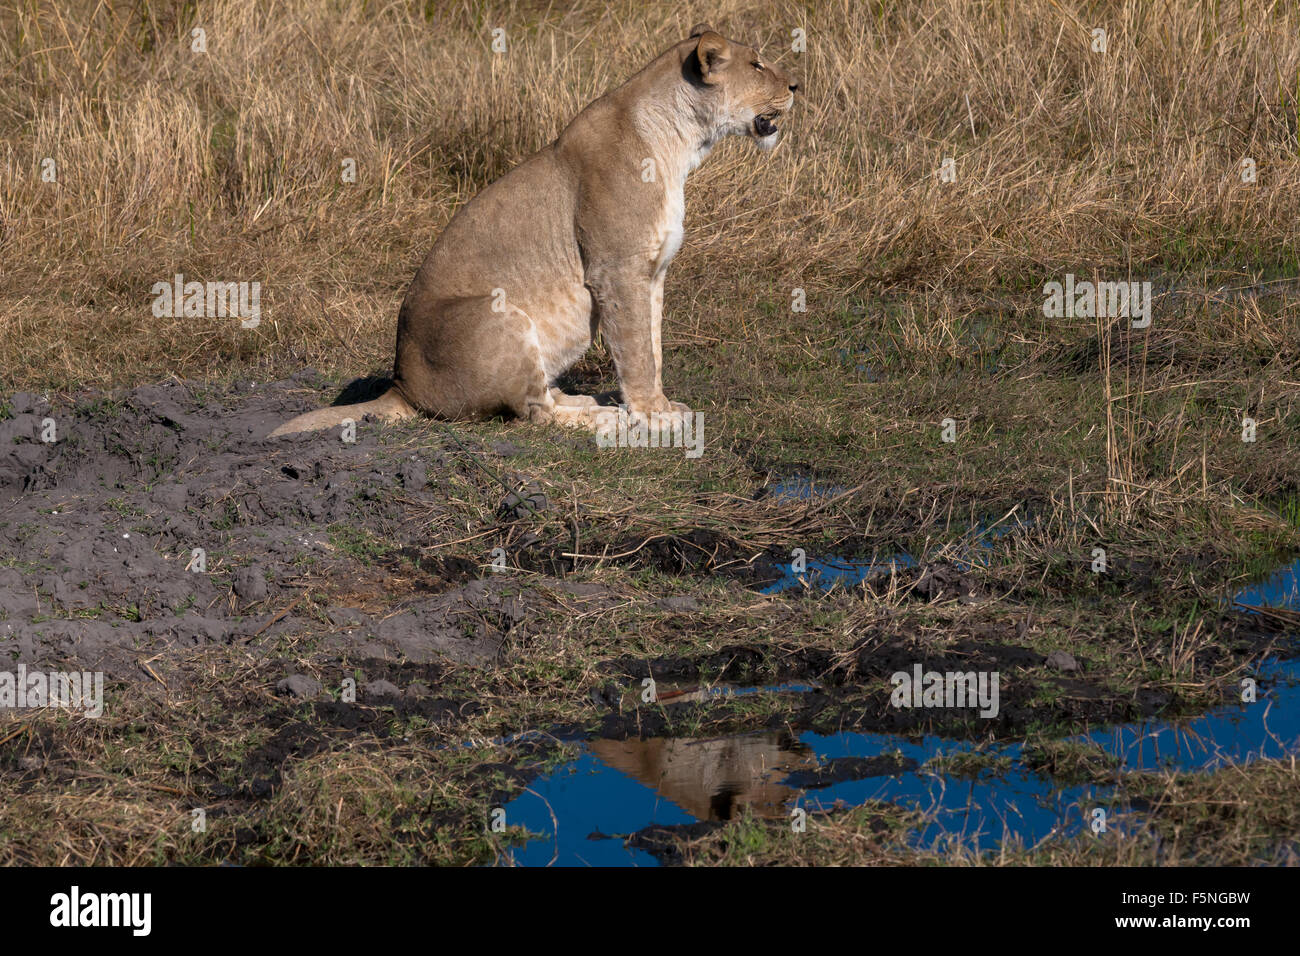 Lioness, Chobe national park reserve, Botswana Stock Photo